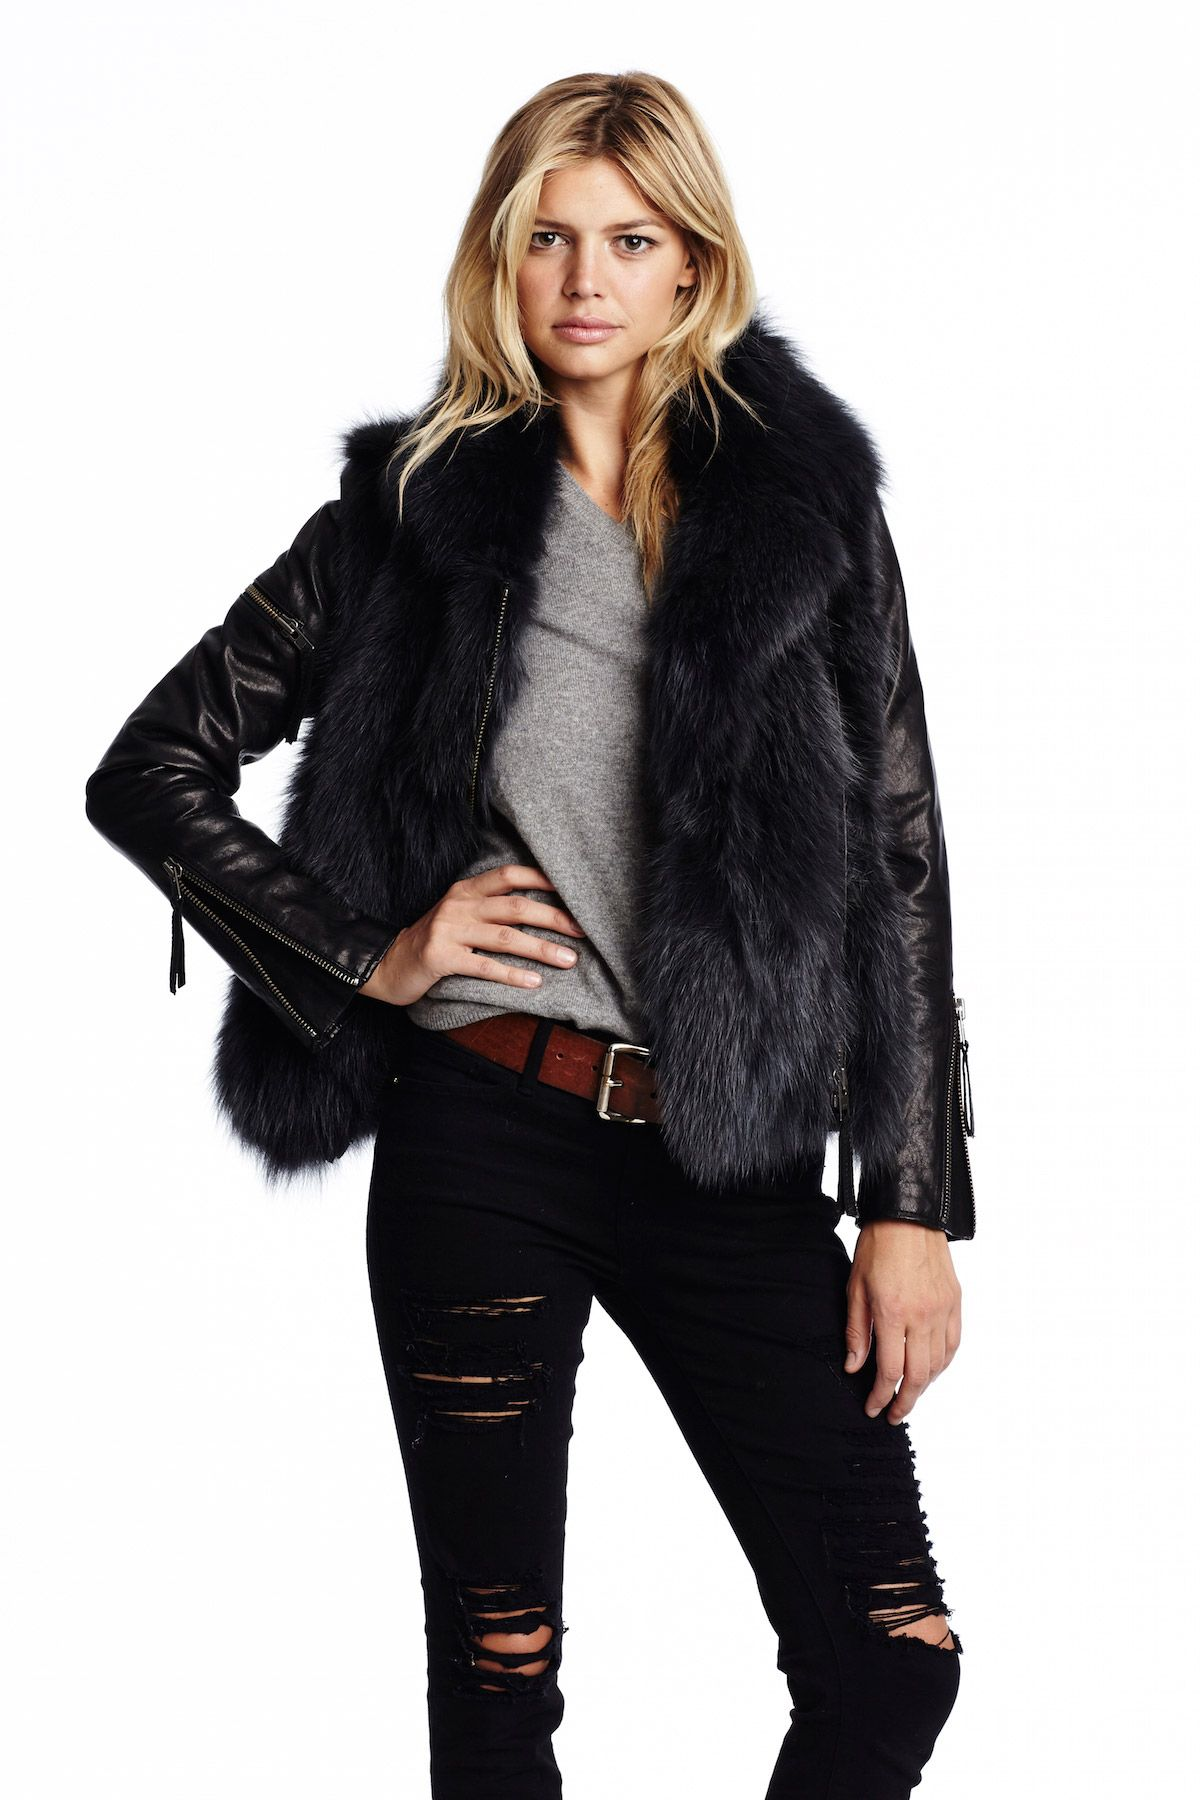 Pin by july supply co. on clotheshorse Fur leather